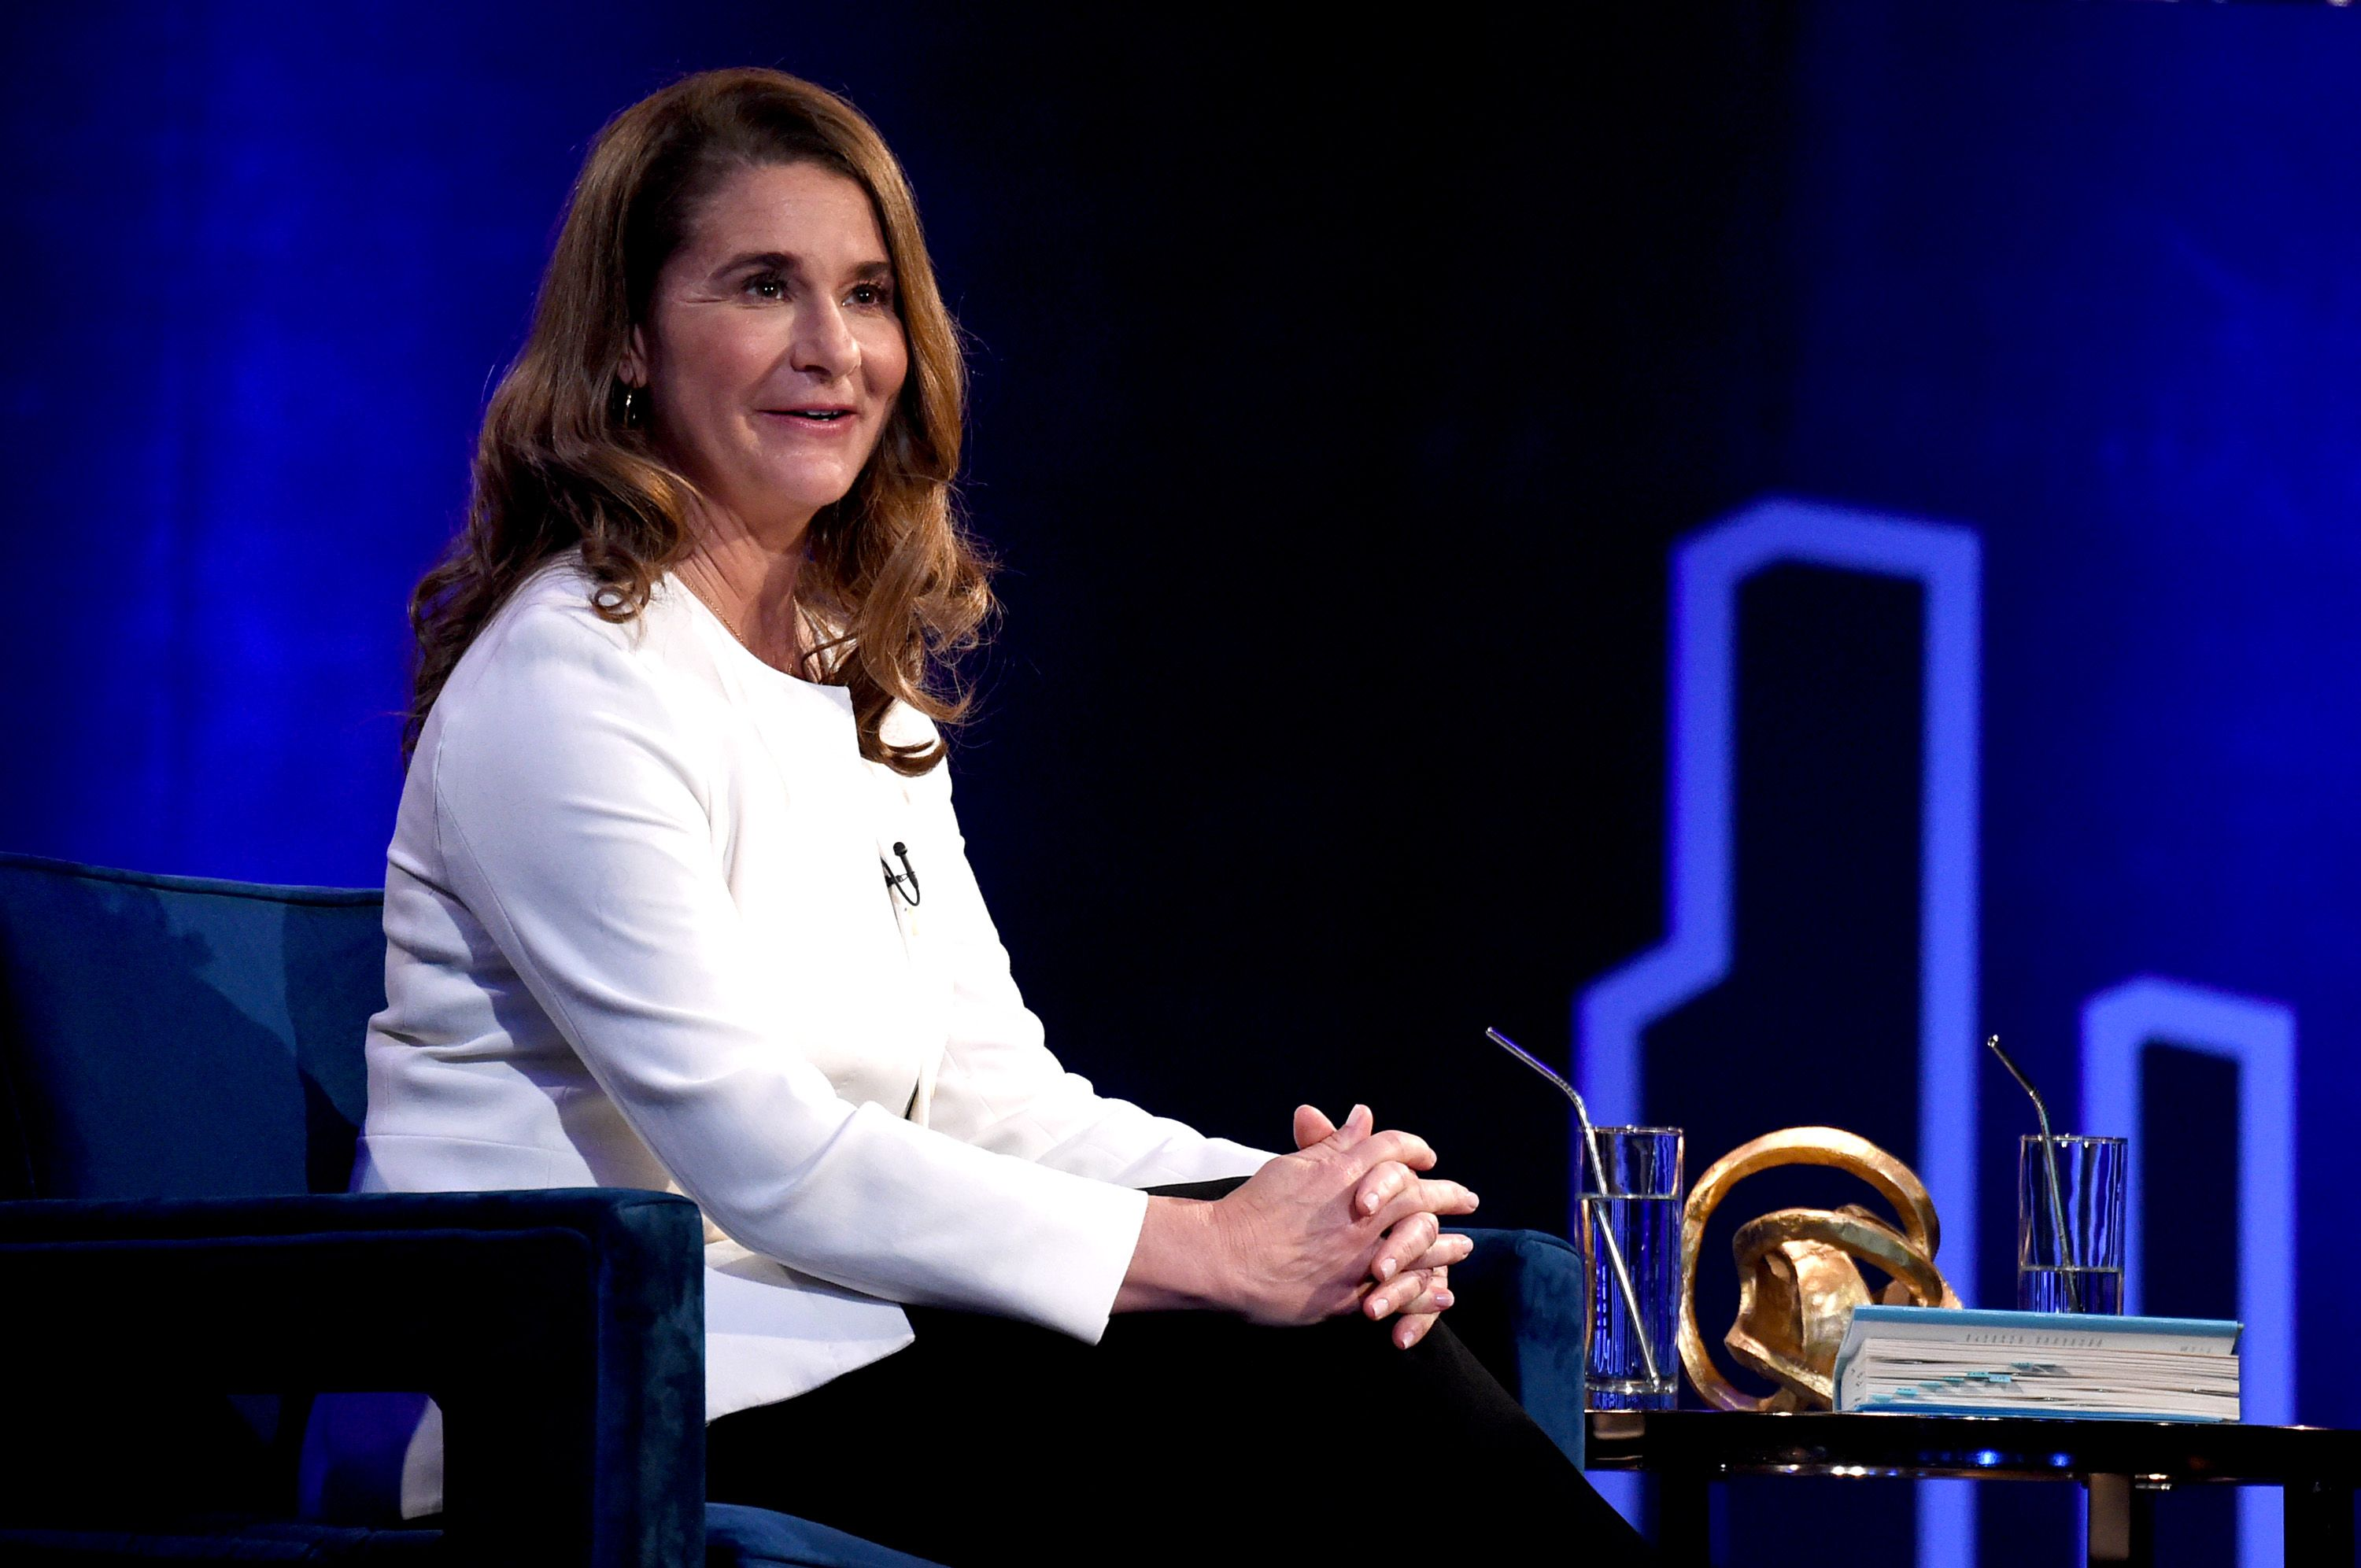 Melinda Gates Now A Billionaire After Stock Transfer From Bill Gates